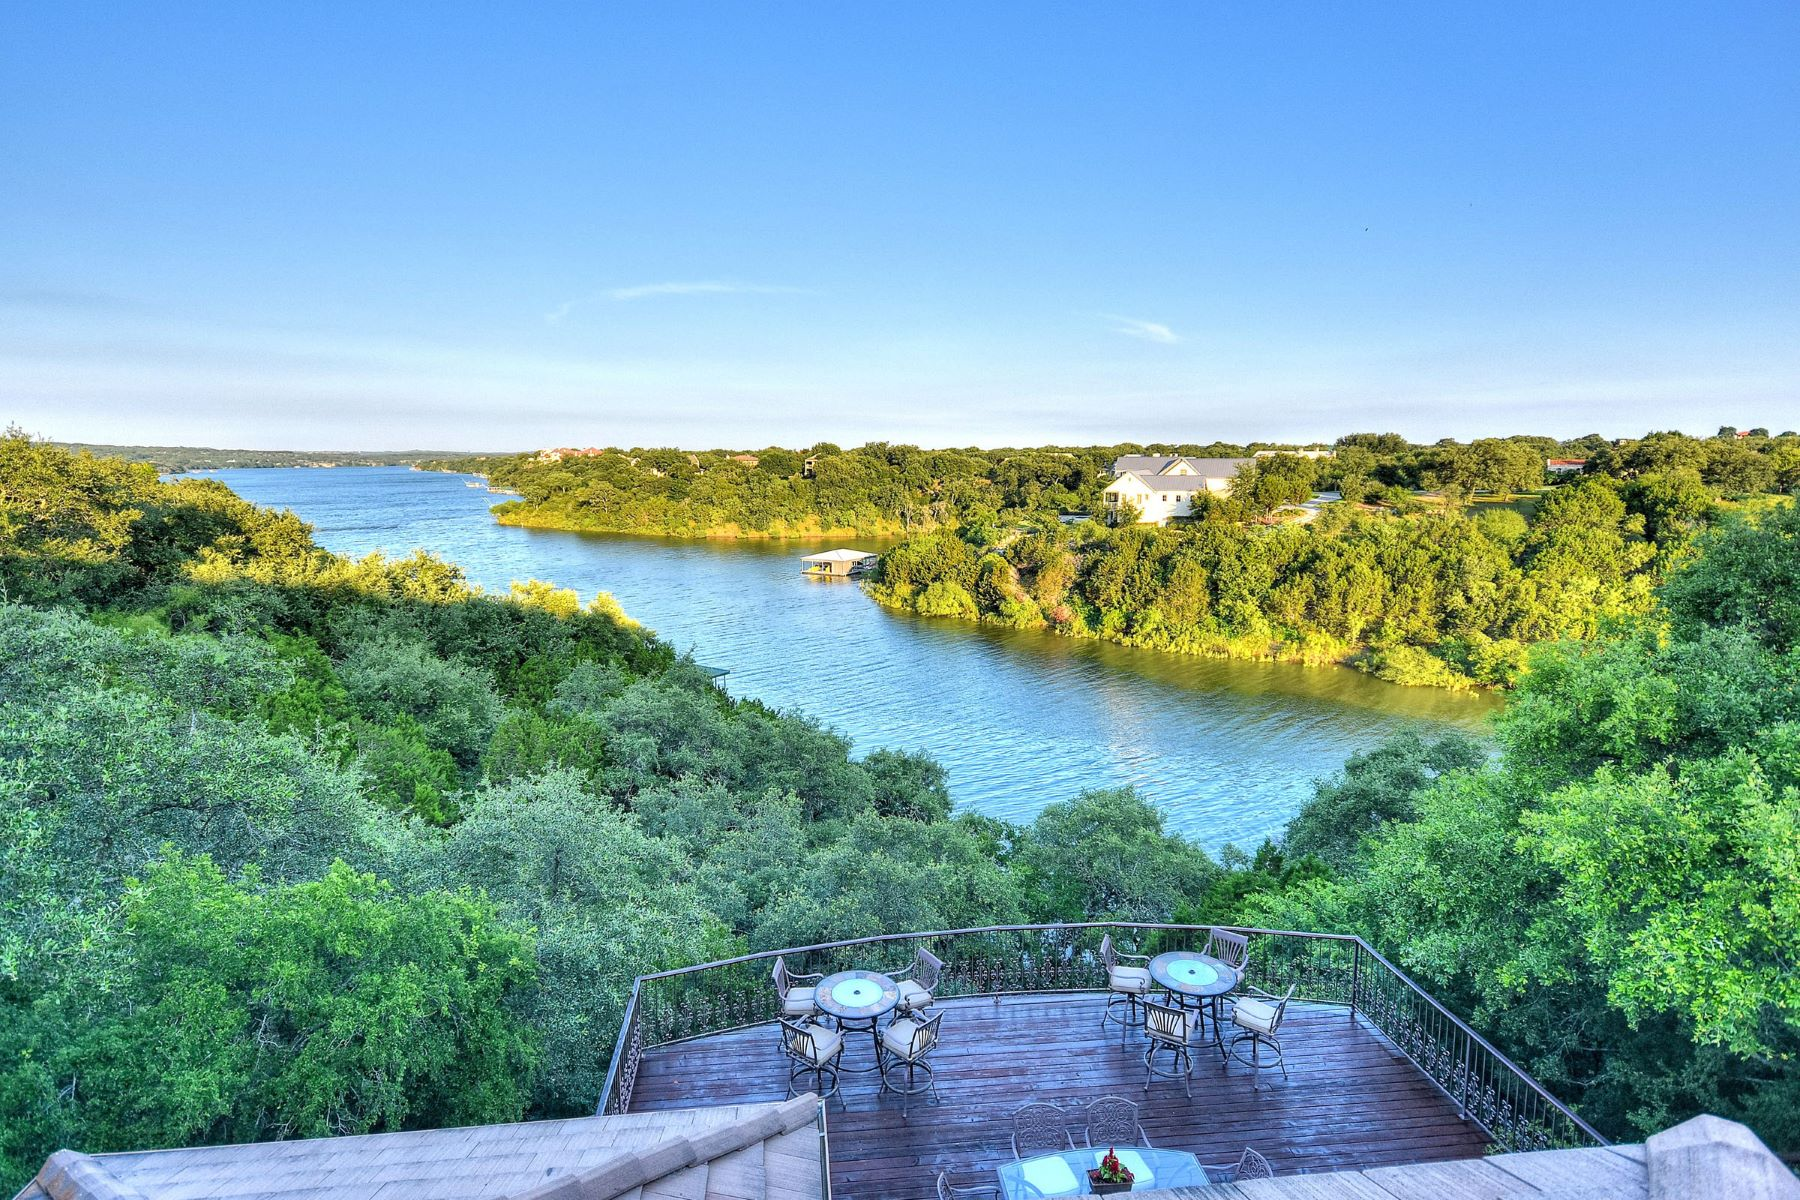 Single Family Home for Sale at The Ideal Lakeside Retreat 2703 Sailboat PASS Spicewood, Texas, 78669 United States